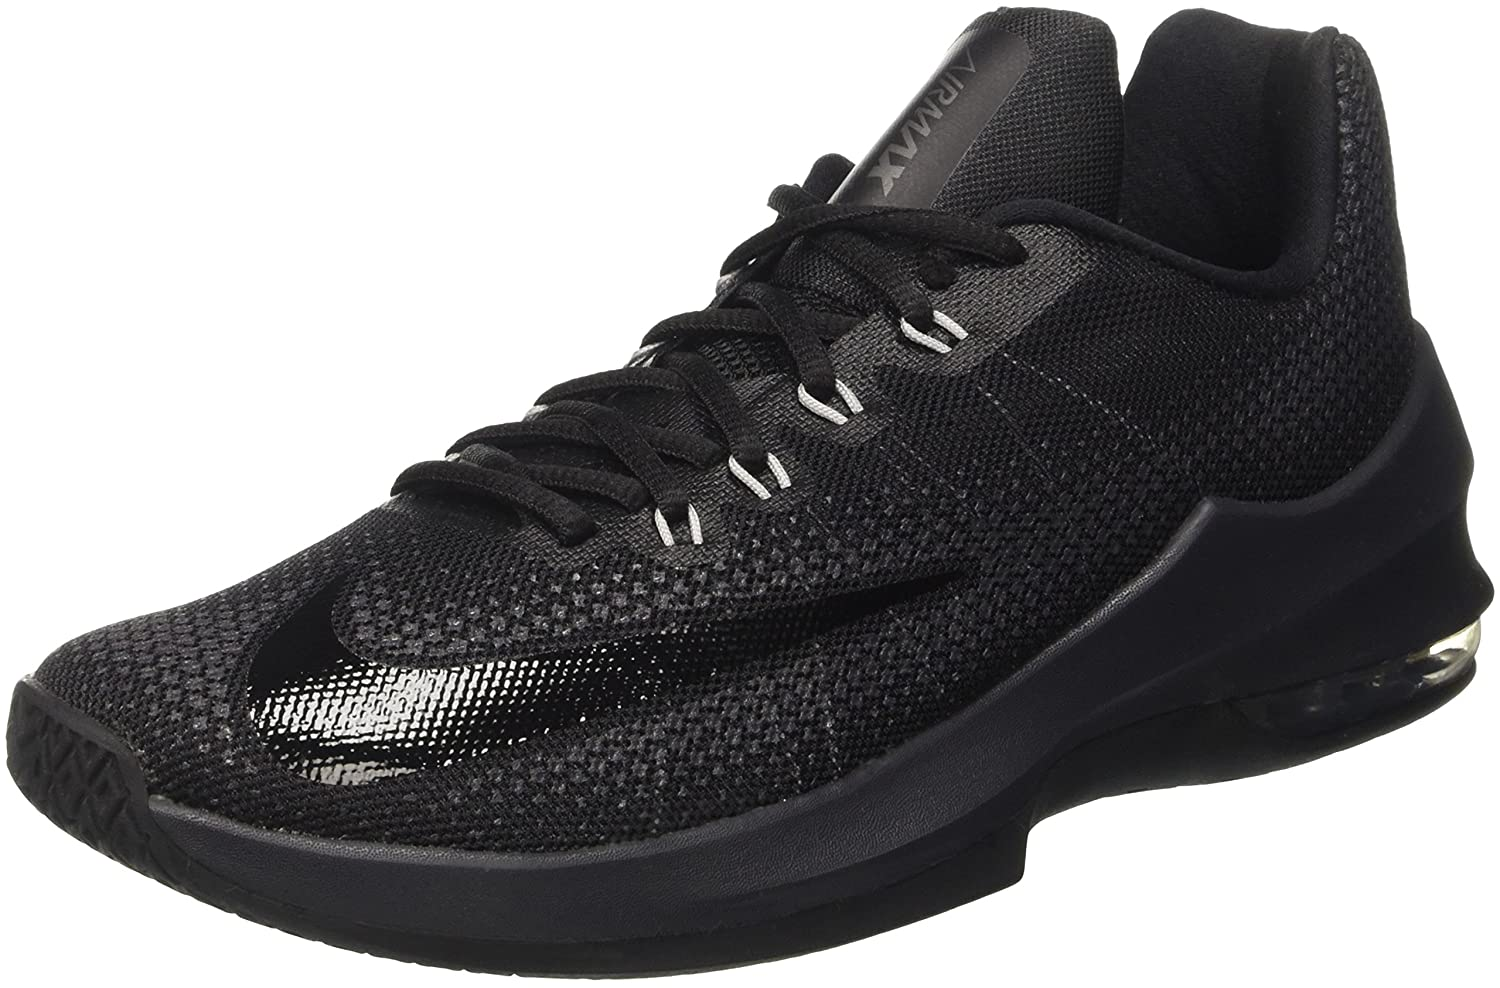 Nike Herren Air Max Infuriate Low Basketballschuhe  47.5 EU|Schwarz (Black/Black/Anthracite/Dark Grey)